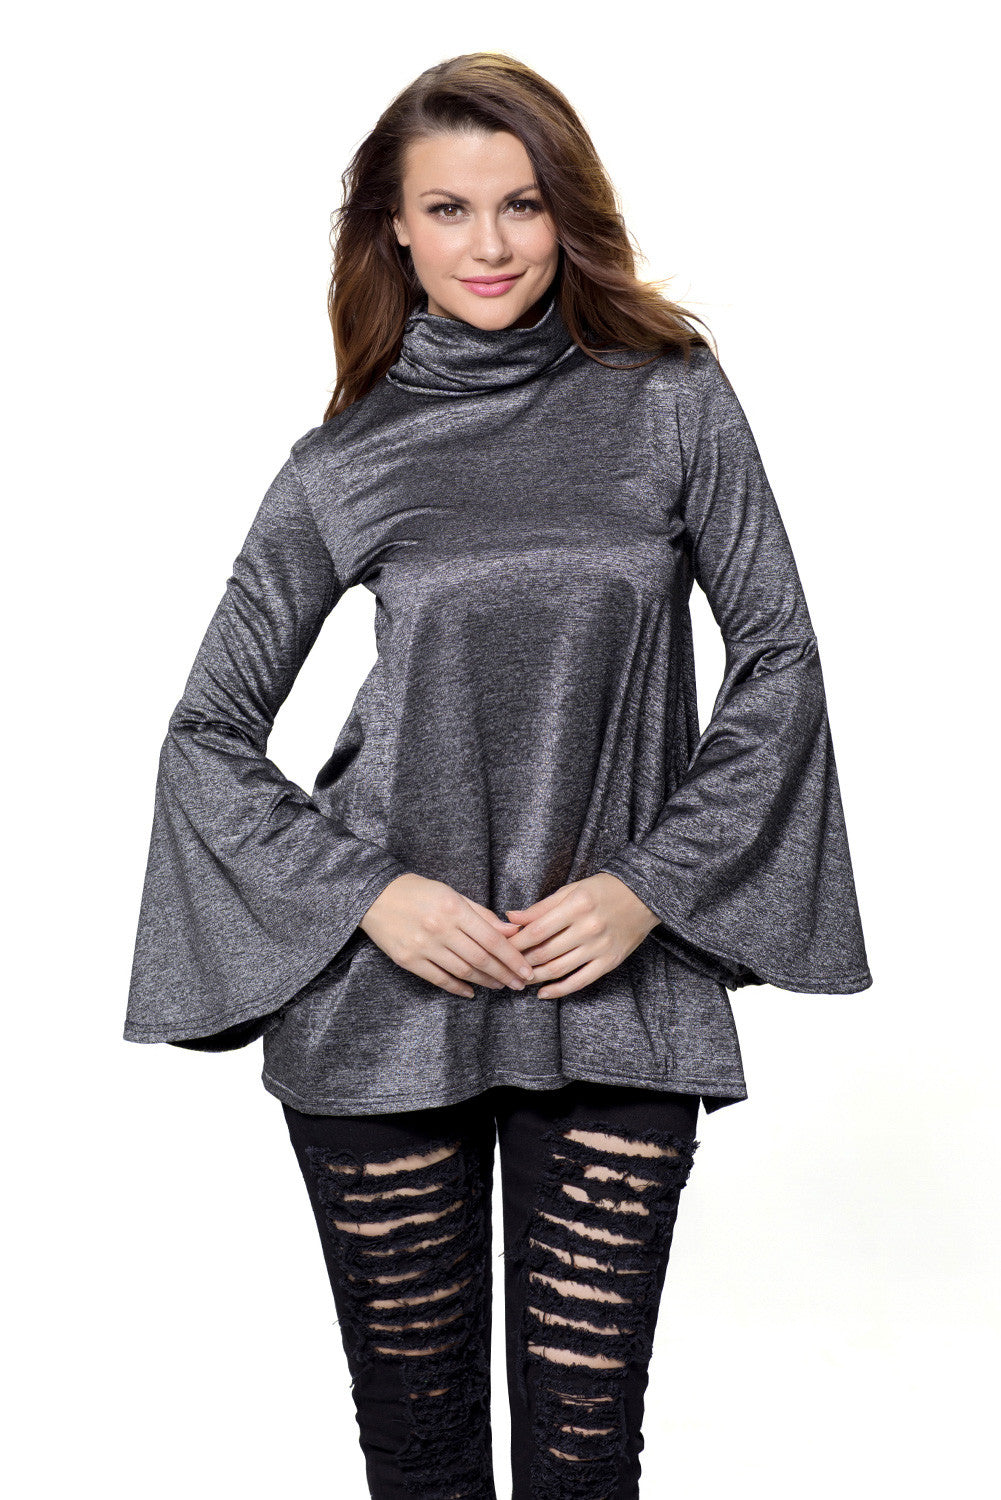 Her Flattering Black Flared Bell Sleeve Knit Fashionable Blouse